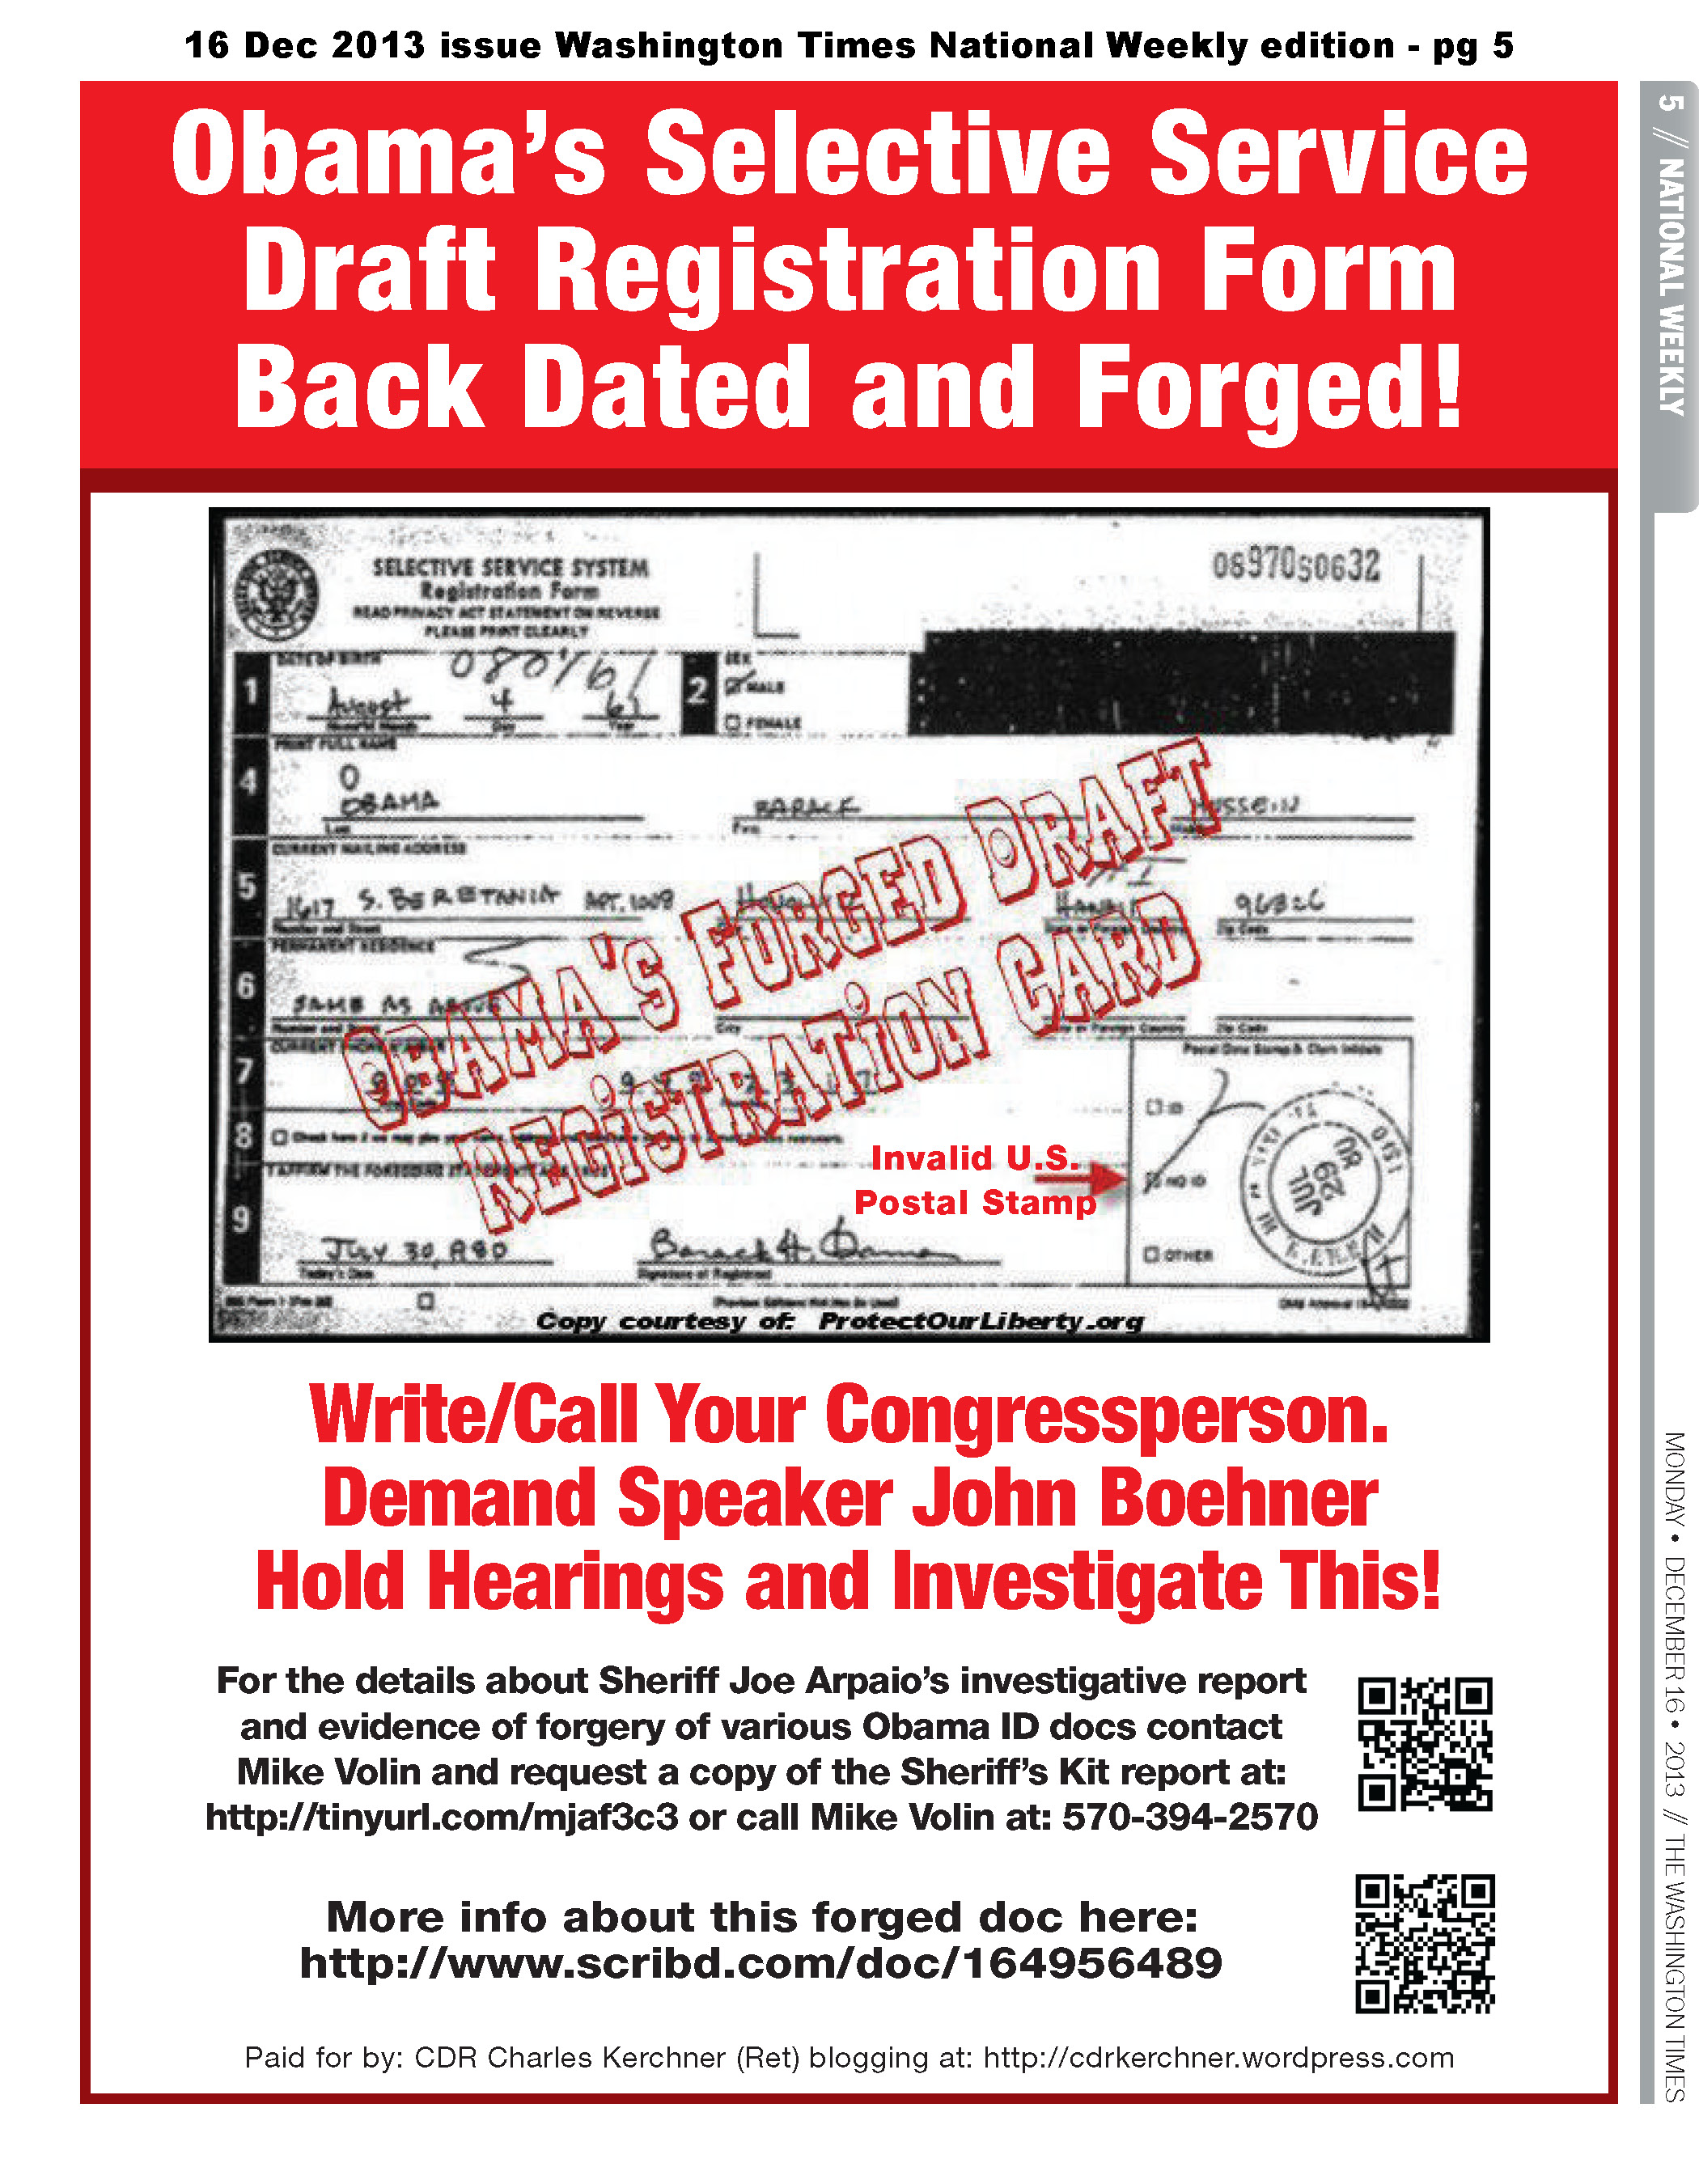 Obama Draft Reg Card Forged!